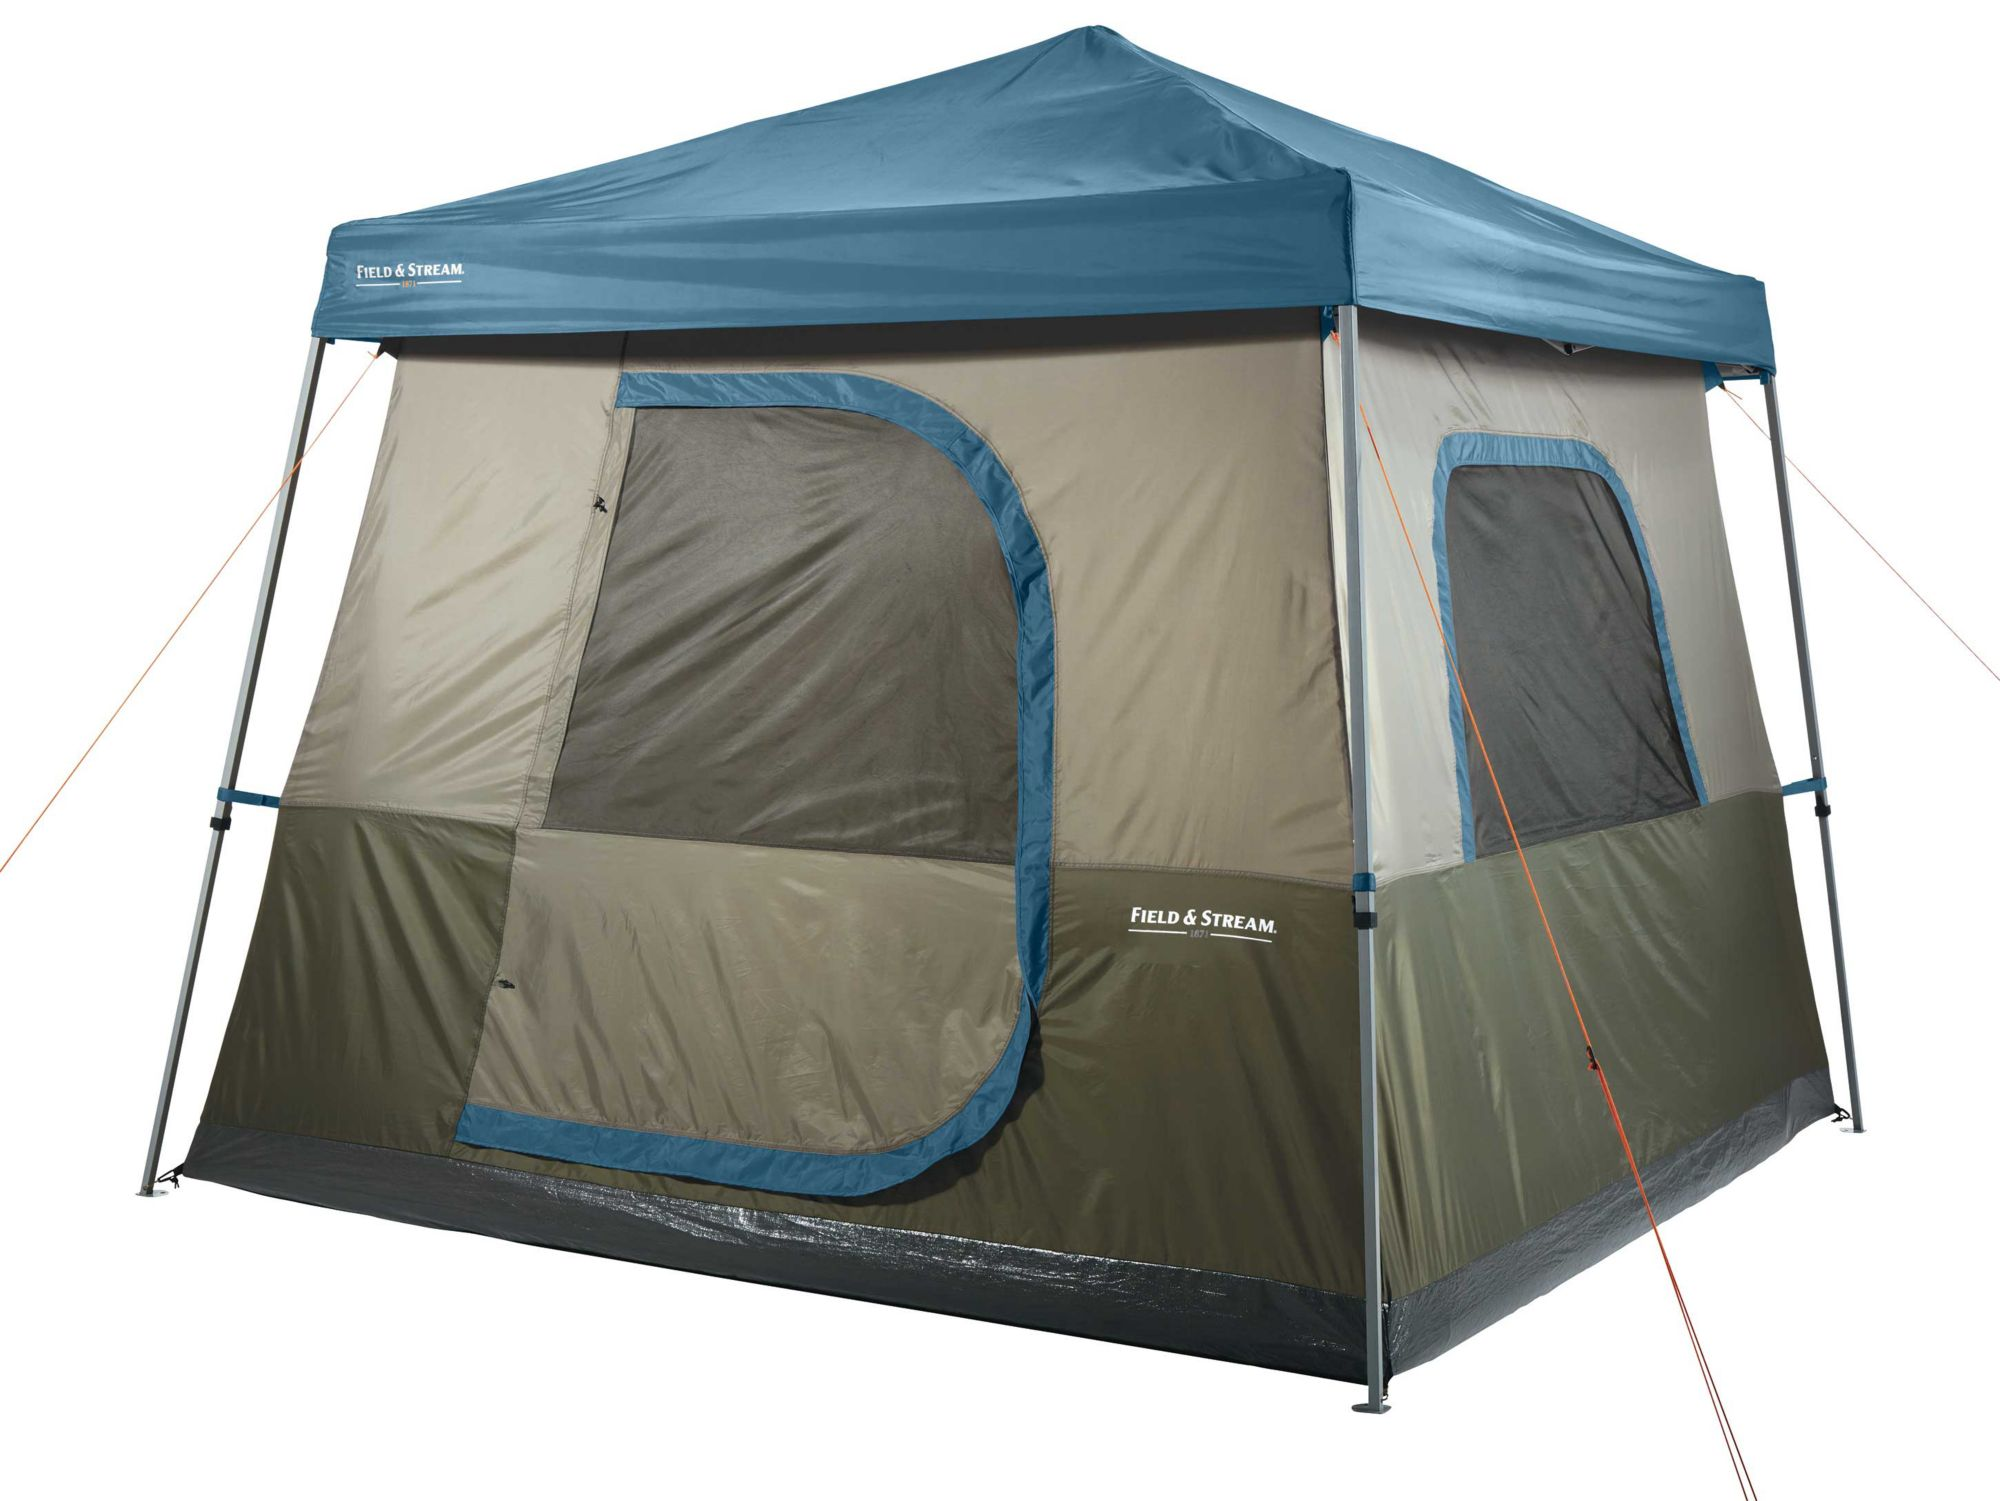 Cool canopy tent noimagefound ??? dvfugzr